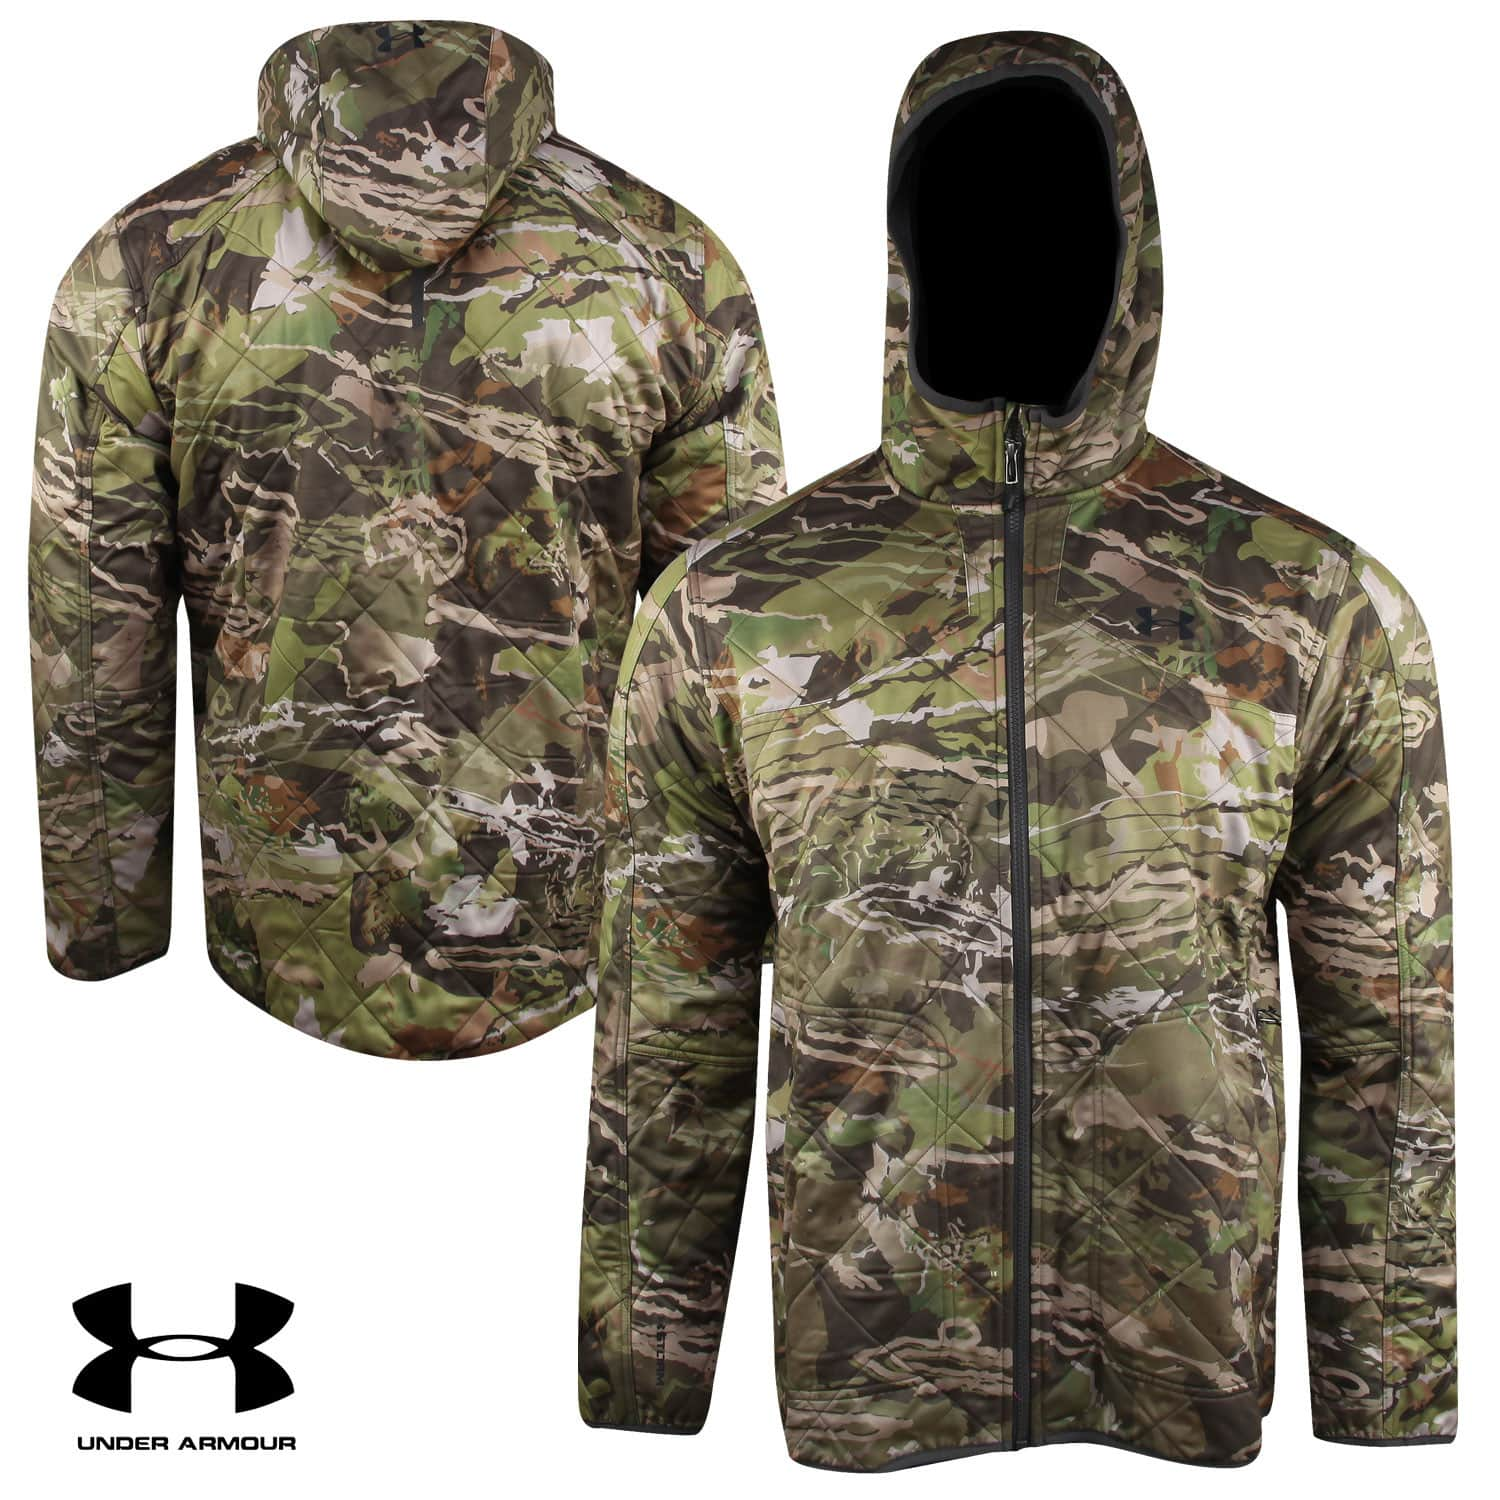 Under Armour Brow Tine Jacket w/Hood (Ridge Reaper Forest) (S to 3XL) $79.91 + Free Shipping